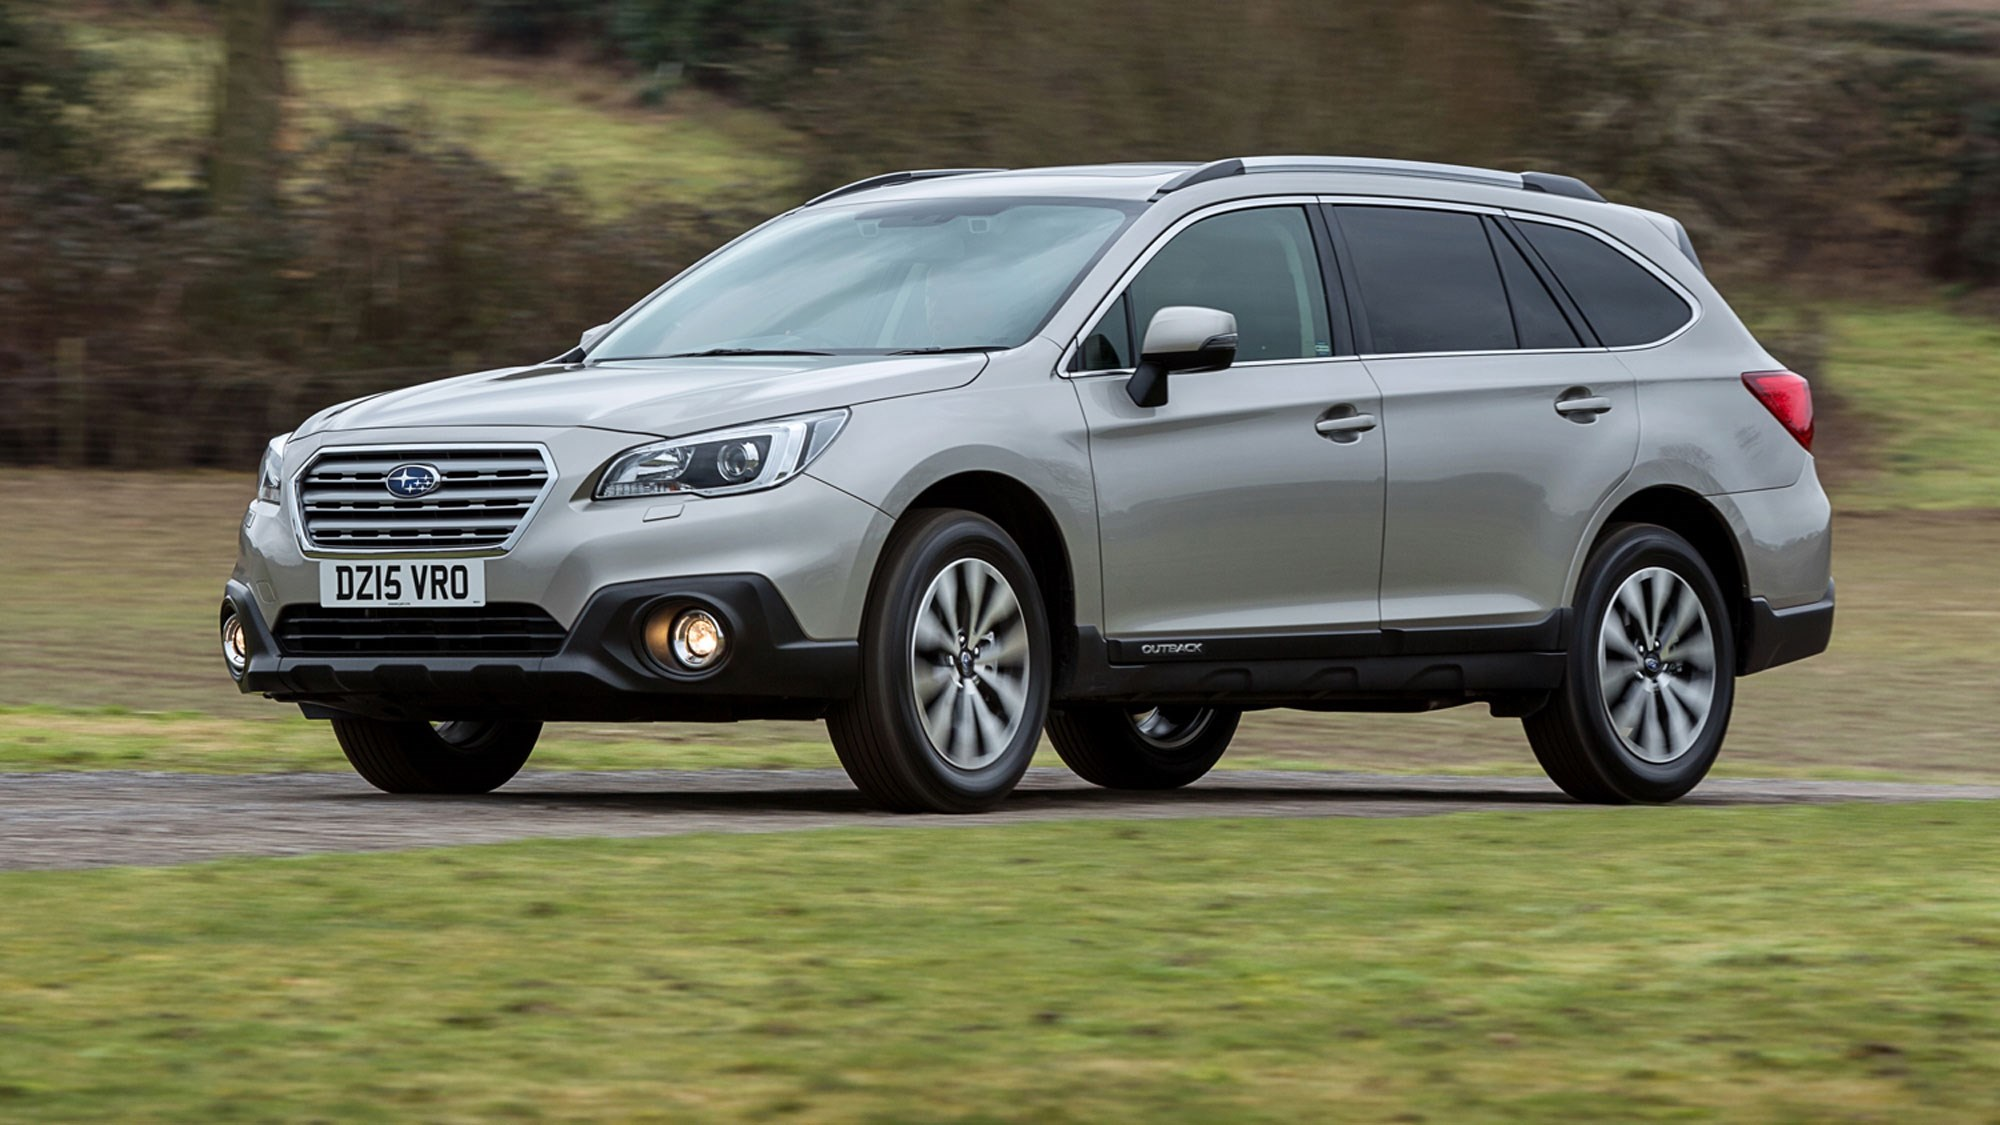 subaru outback 2015 review car magazine subaru outback 2015 review car magazine